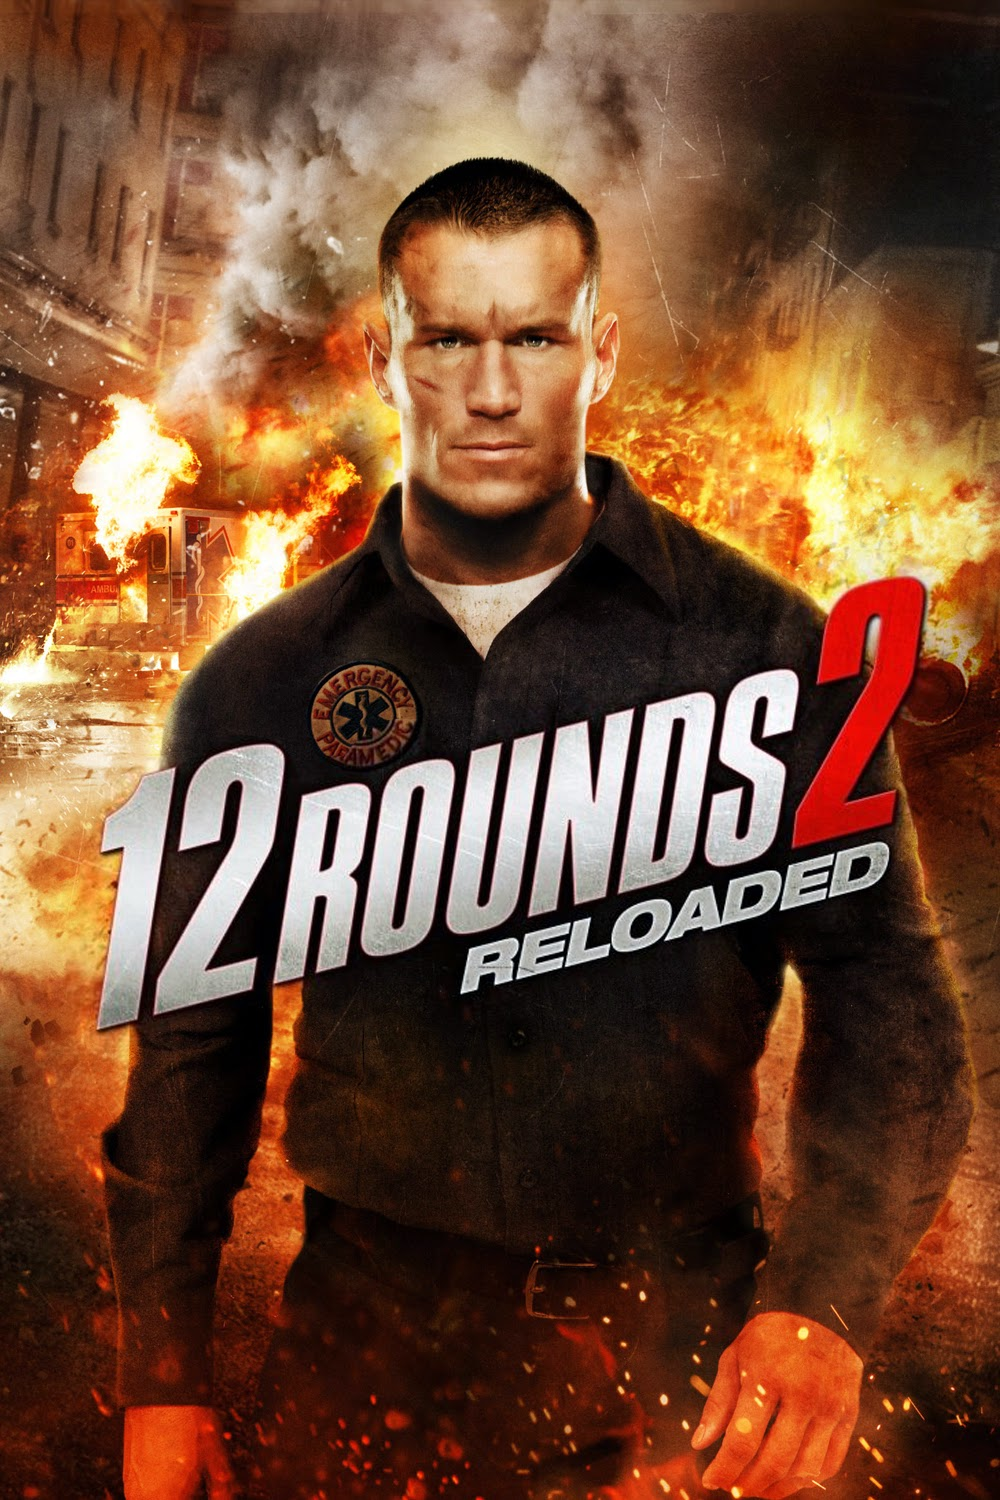 12 Vòng Sinh Tử 2: Tái chiến - 12 Rounds 2: Reloaded (2013) Poster